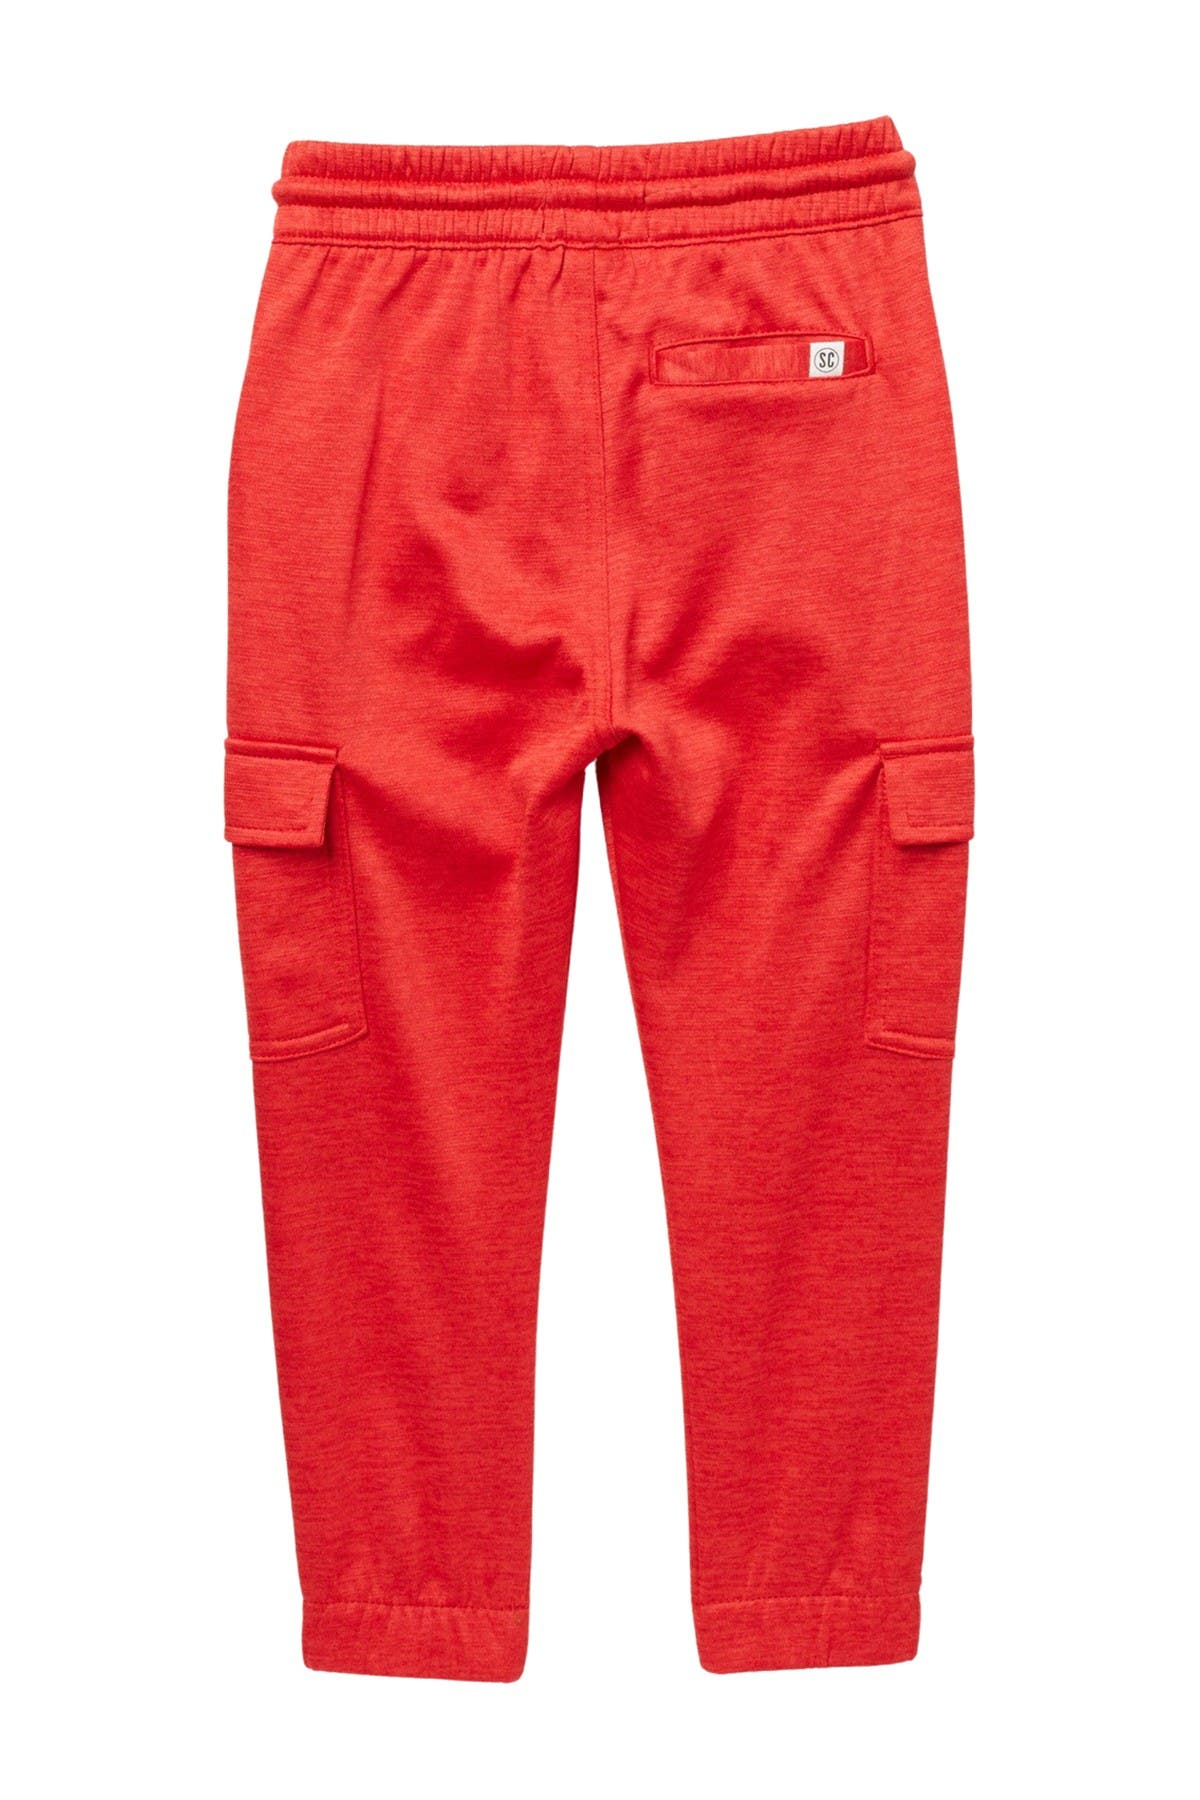 Image of Sovereign Code Trench Cargo Joggers